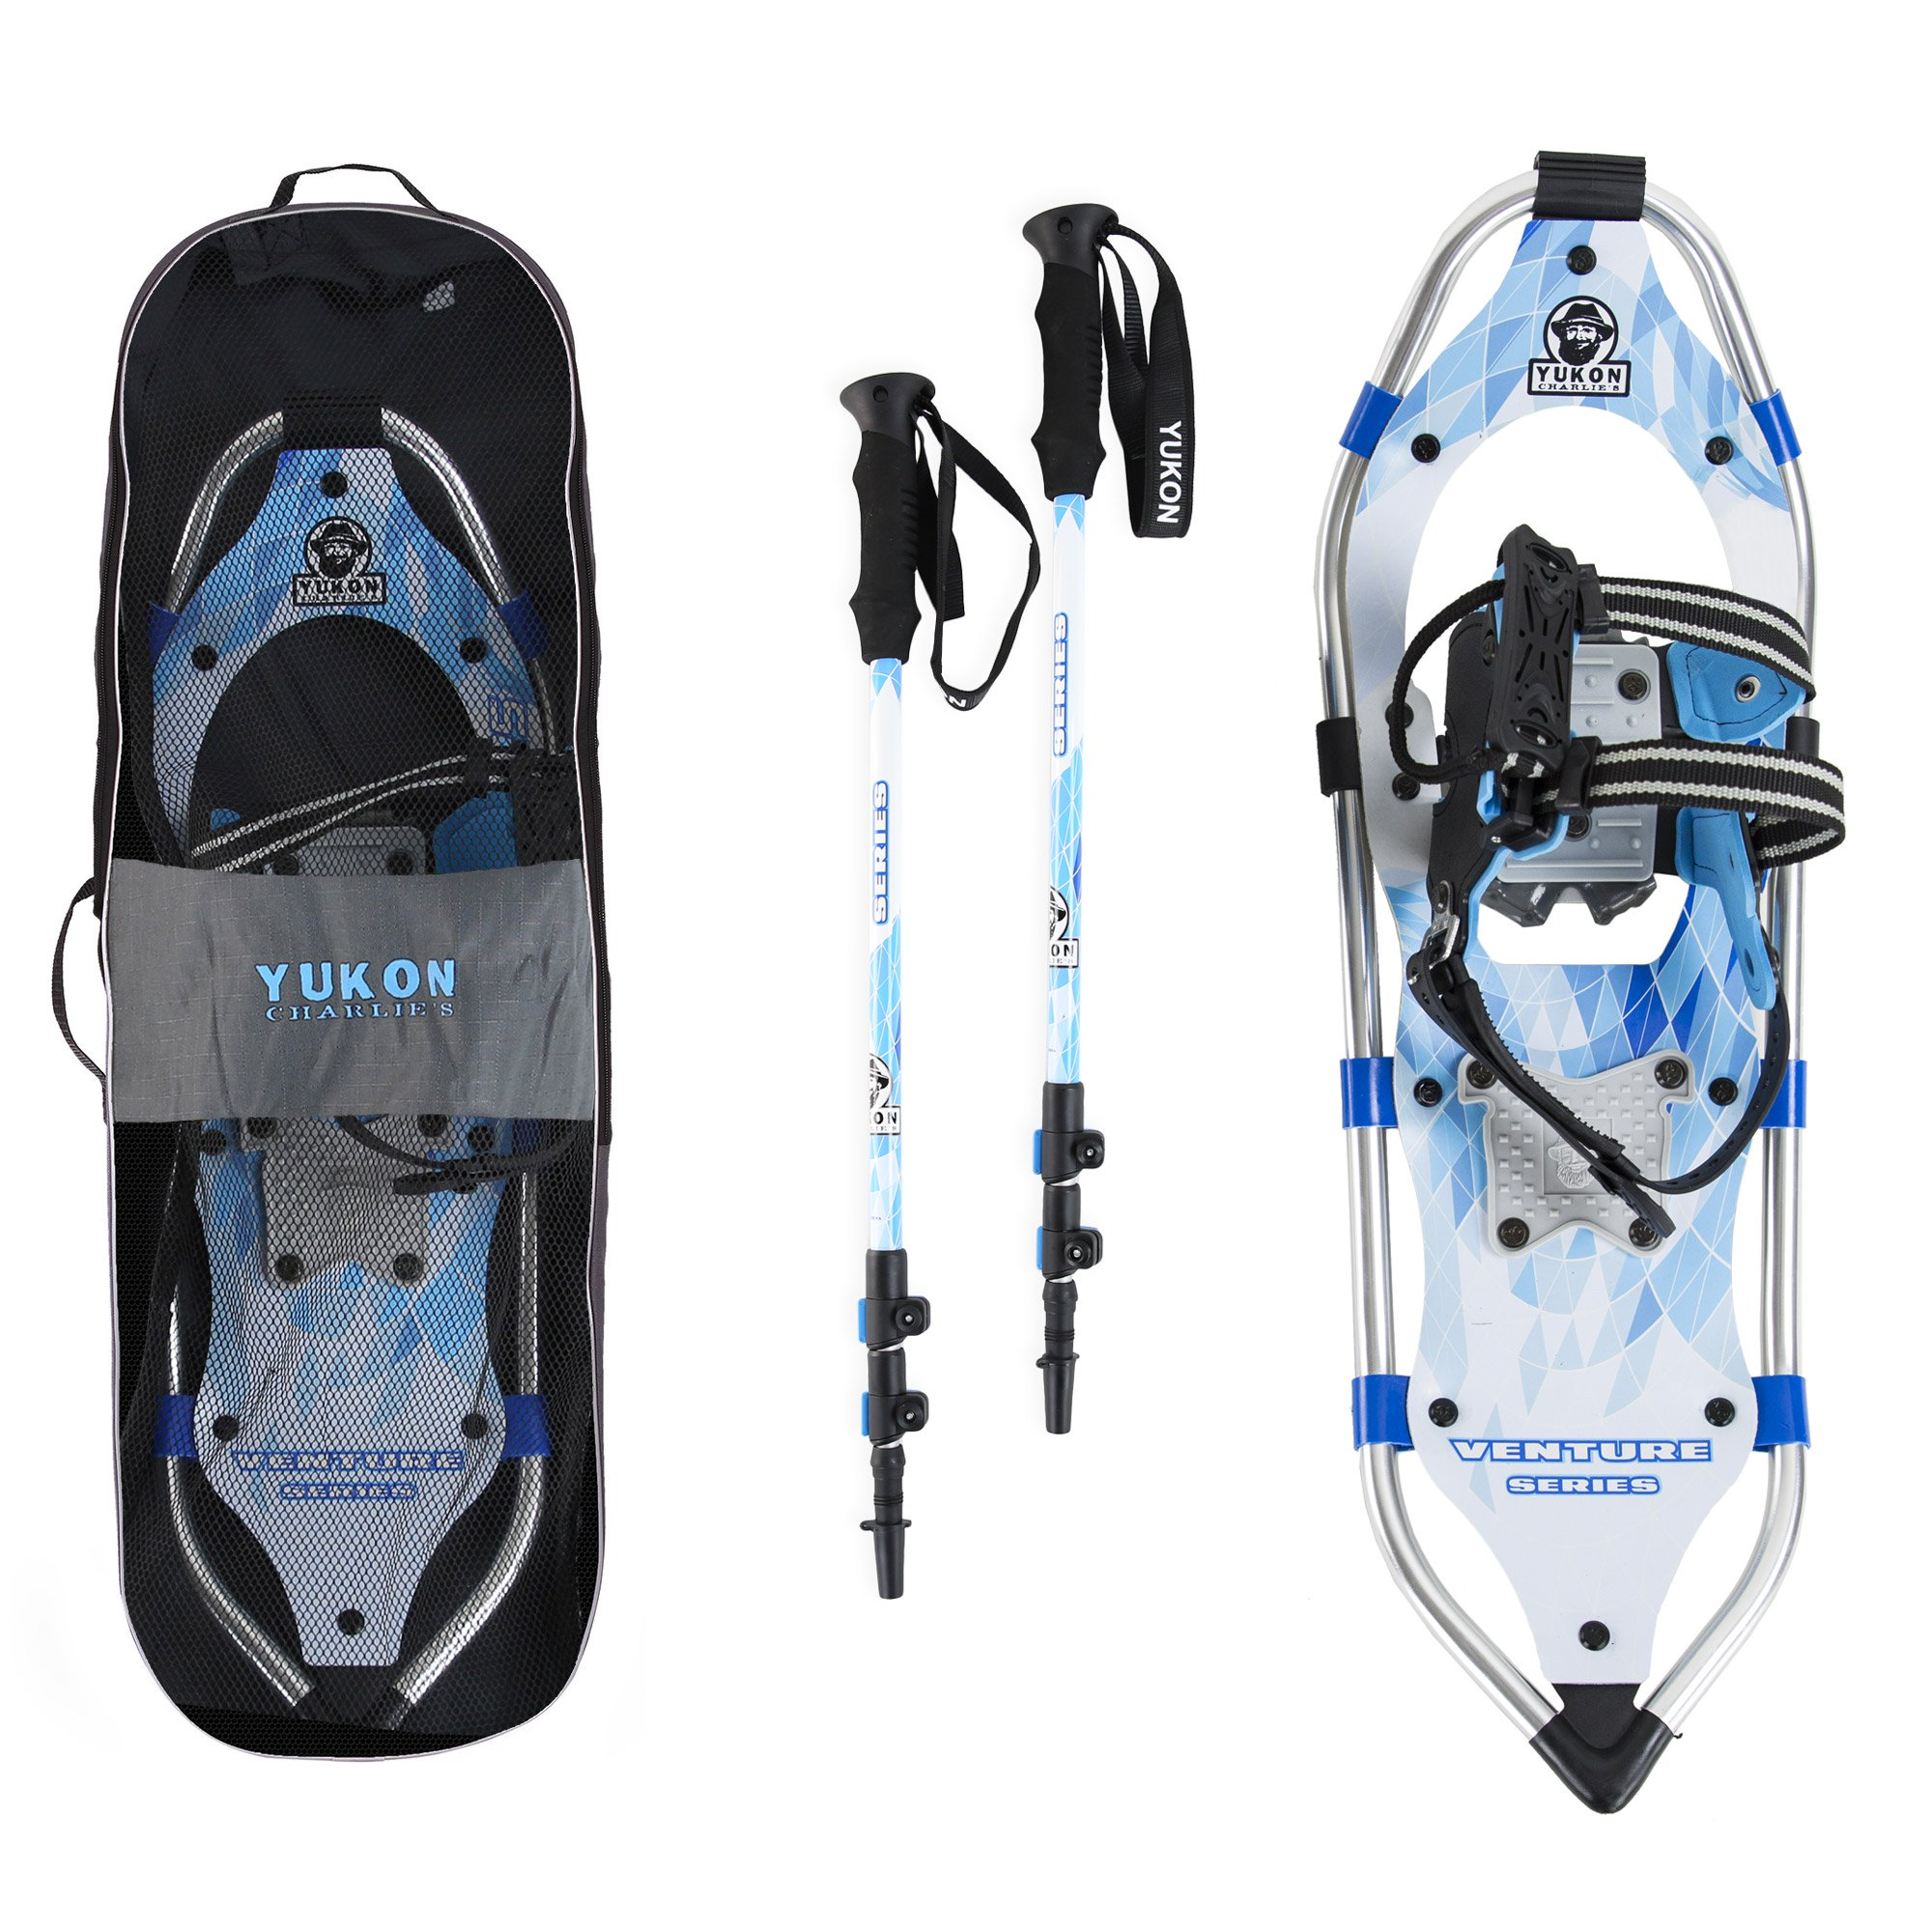 Yukon Charlie's Advanced 8 x 21 Inch Women's Snowshoe Kit with Poles and Bag